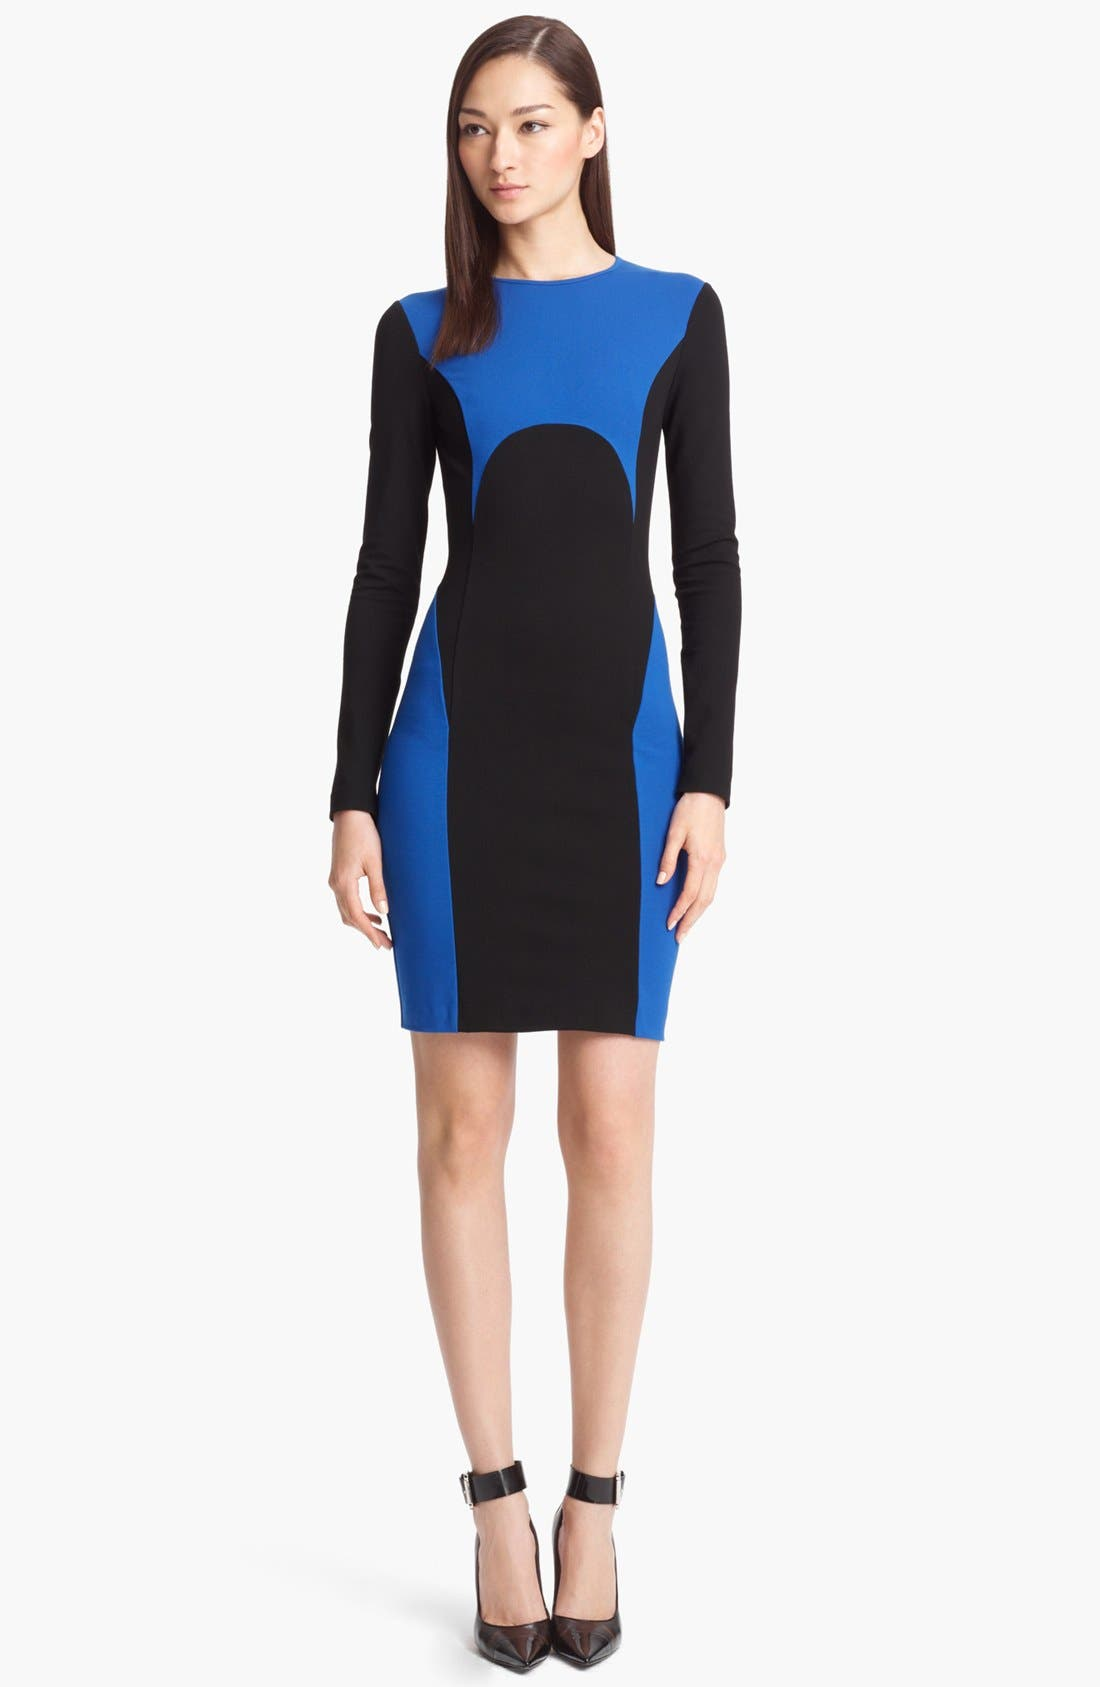 Alternate Image 1 Selected - Michael Kors Colorblock Jersey Dress